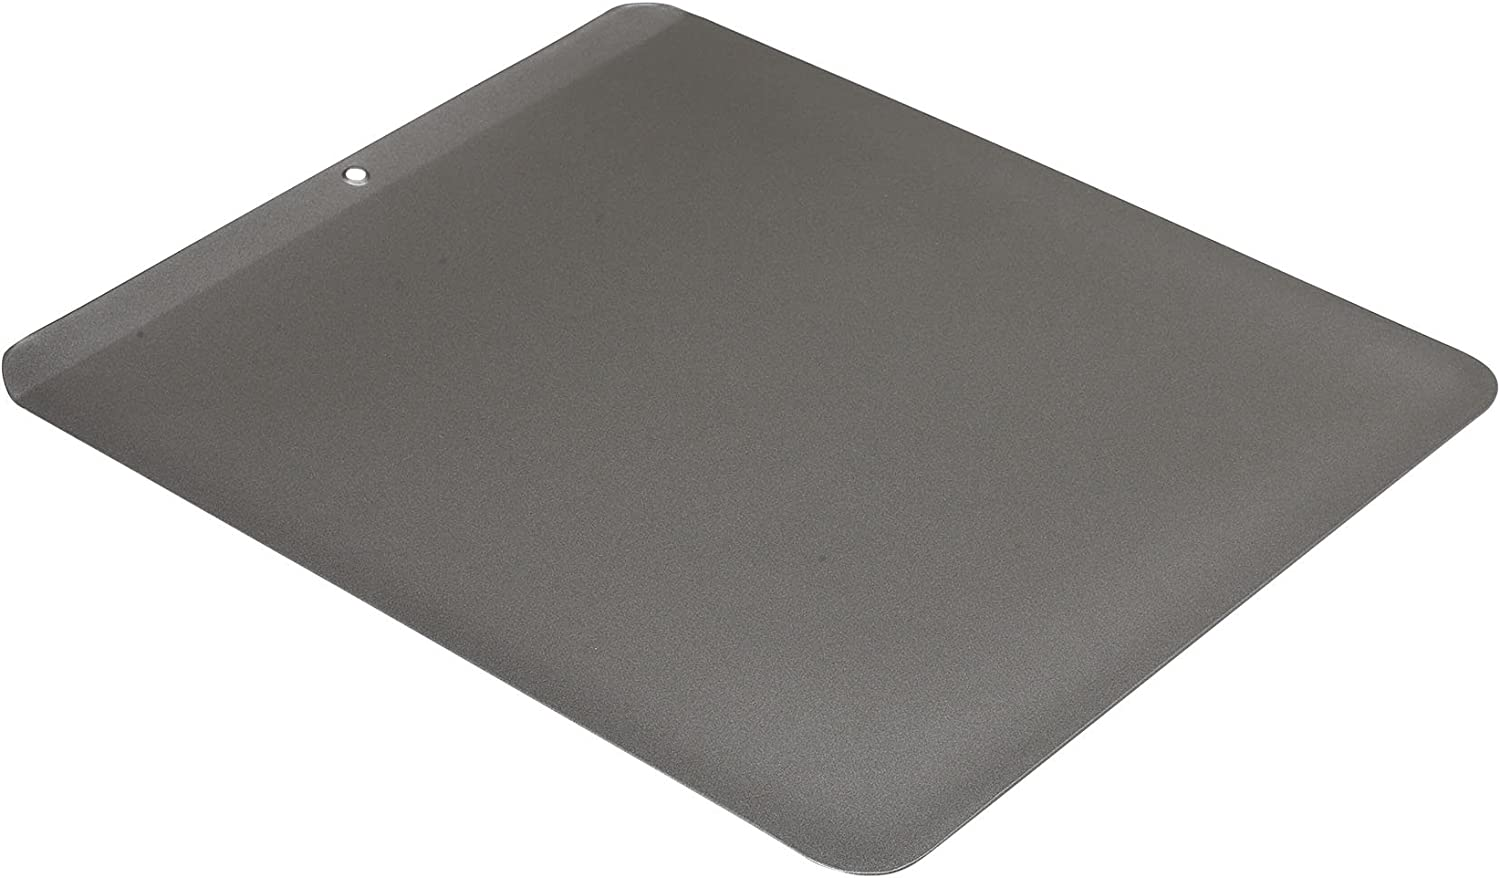 GoodCook Nonstick Insulated Slide off Baking Sheet, No Burnt Cookies, 13x16 inches, Grey